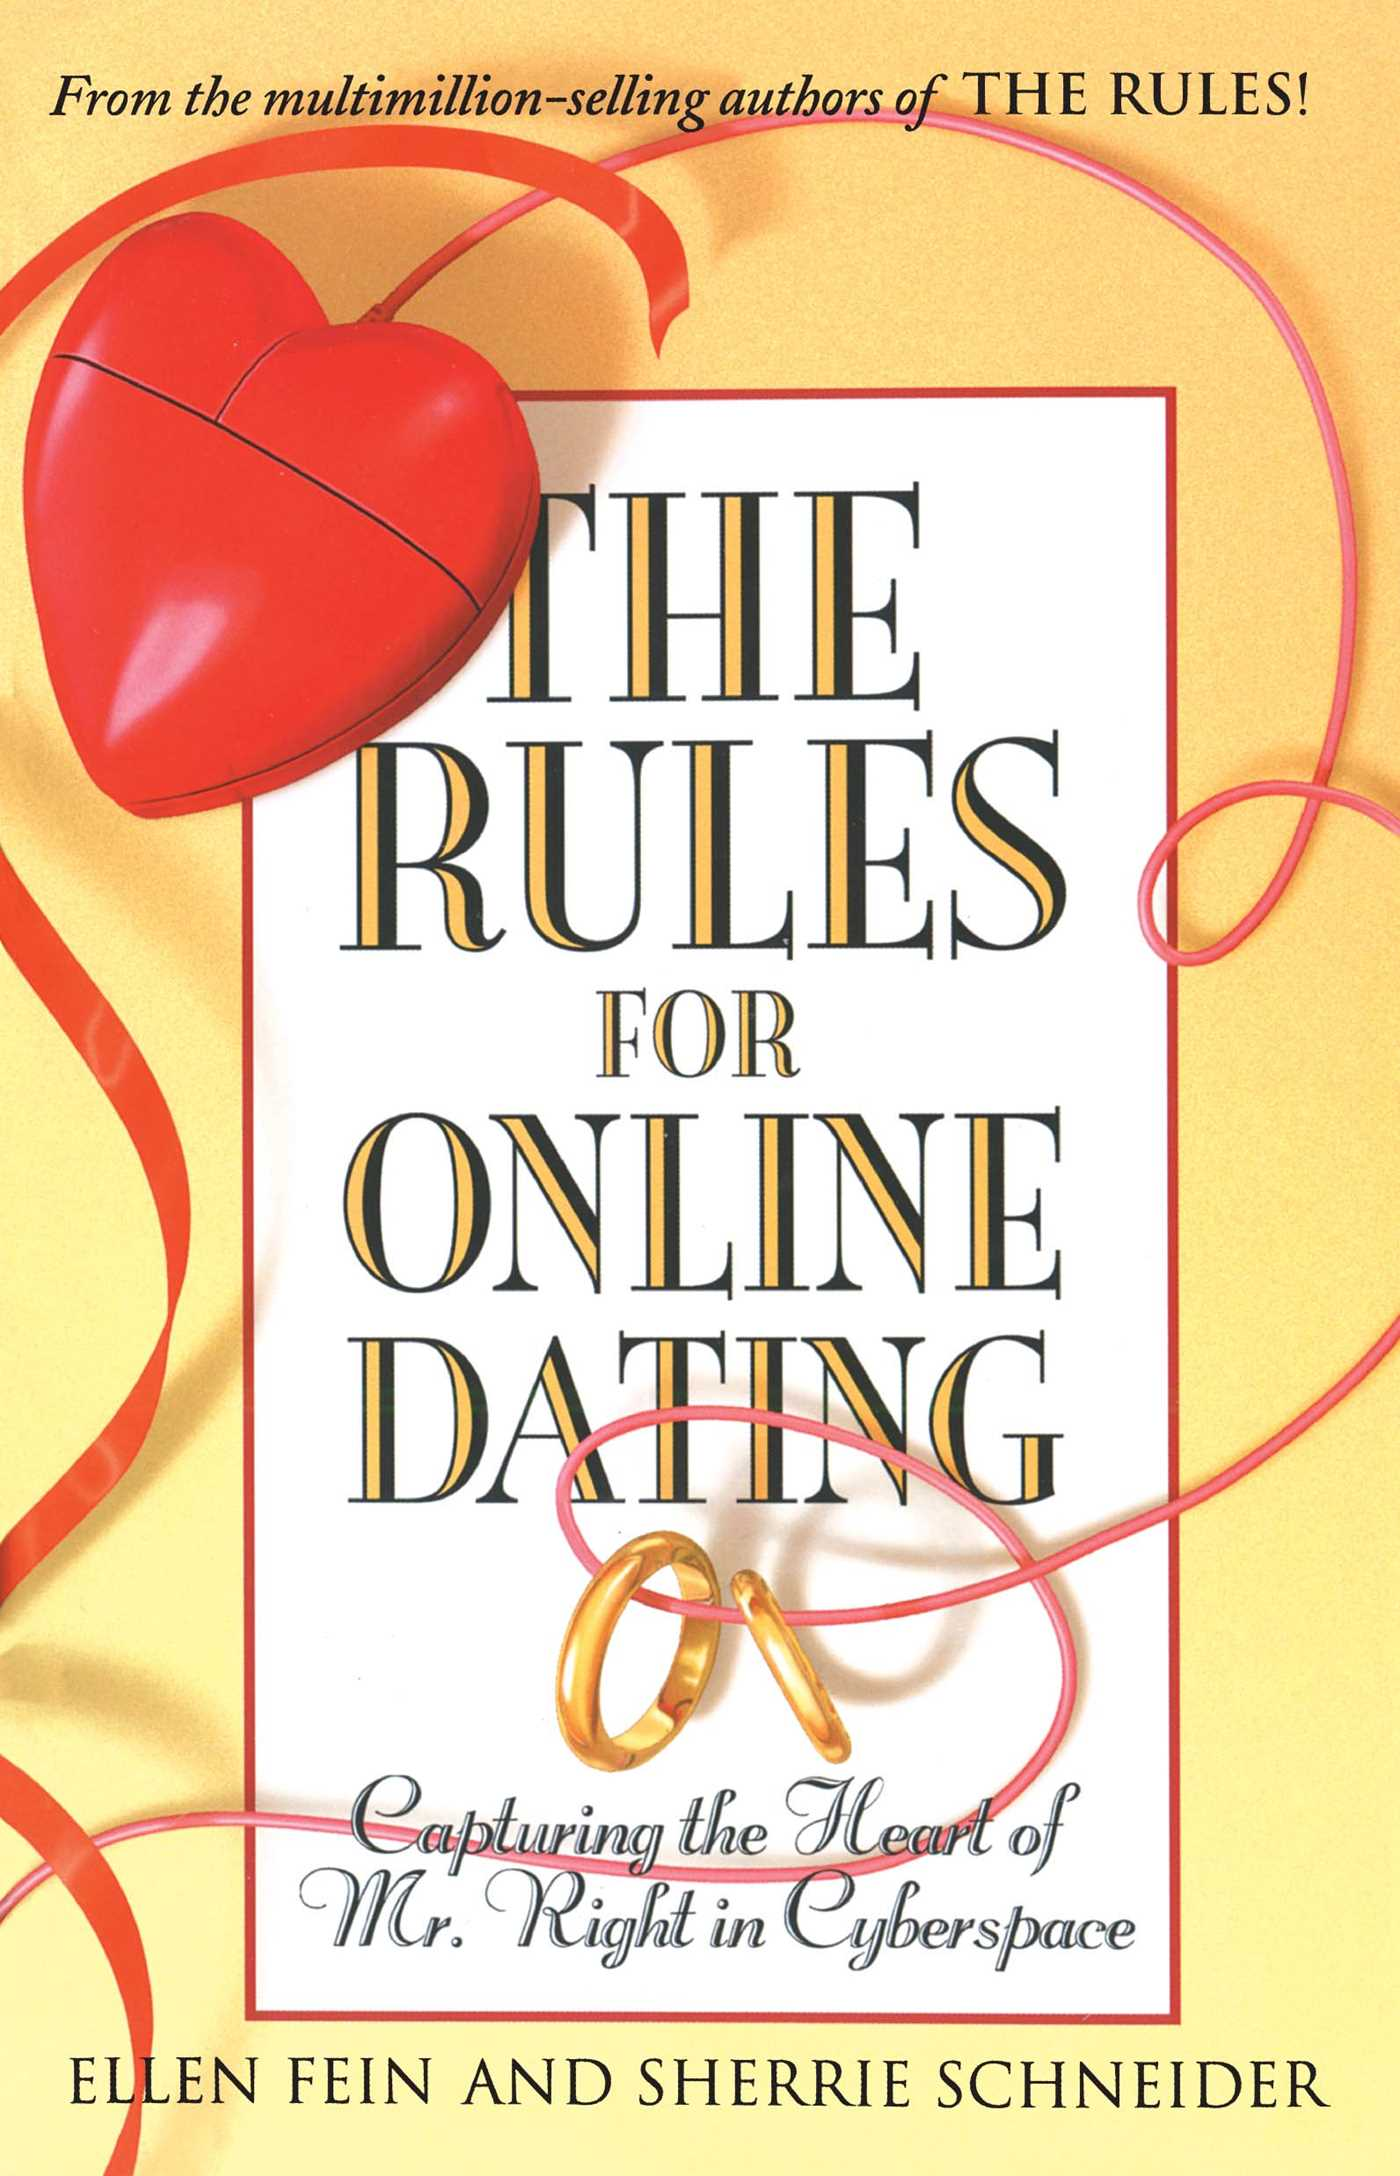 Books on online dating in Melbourne